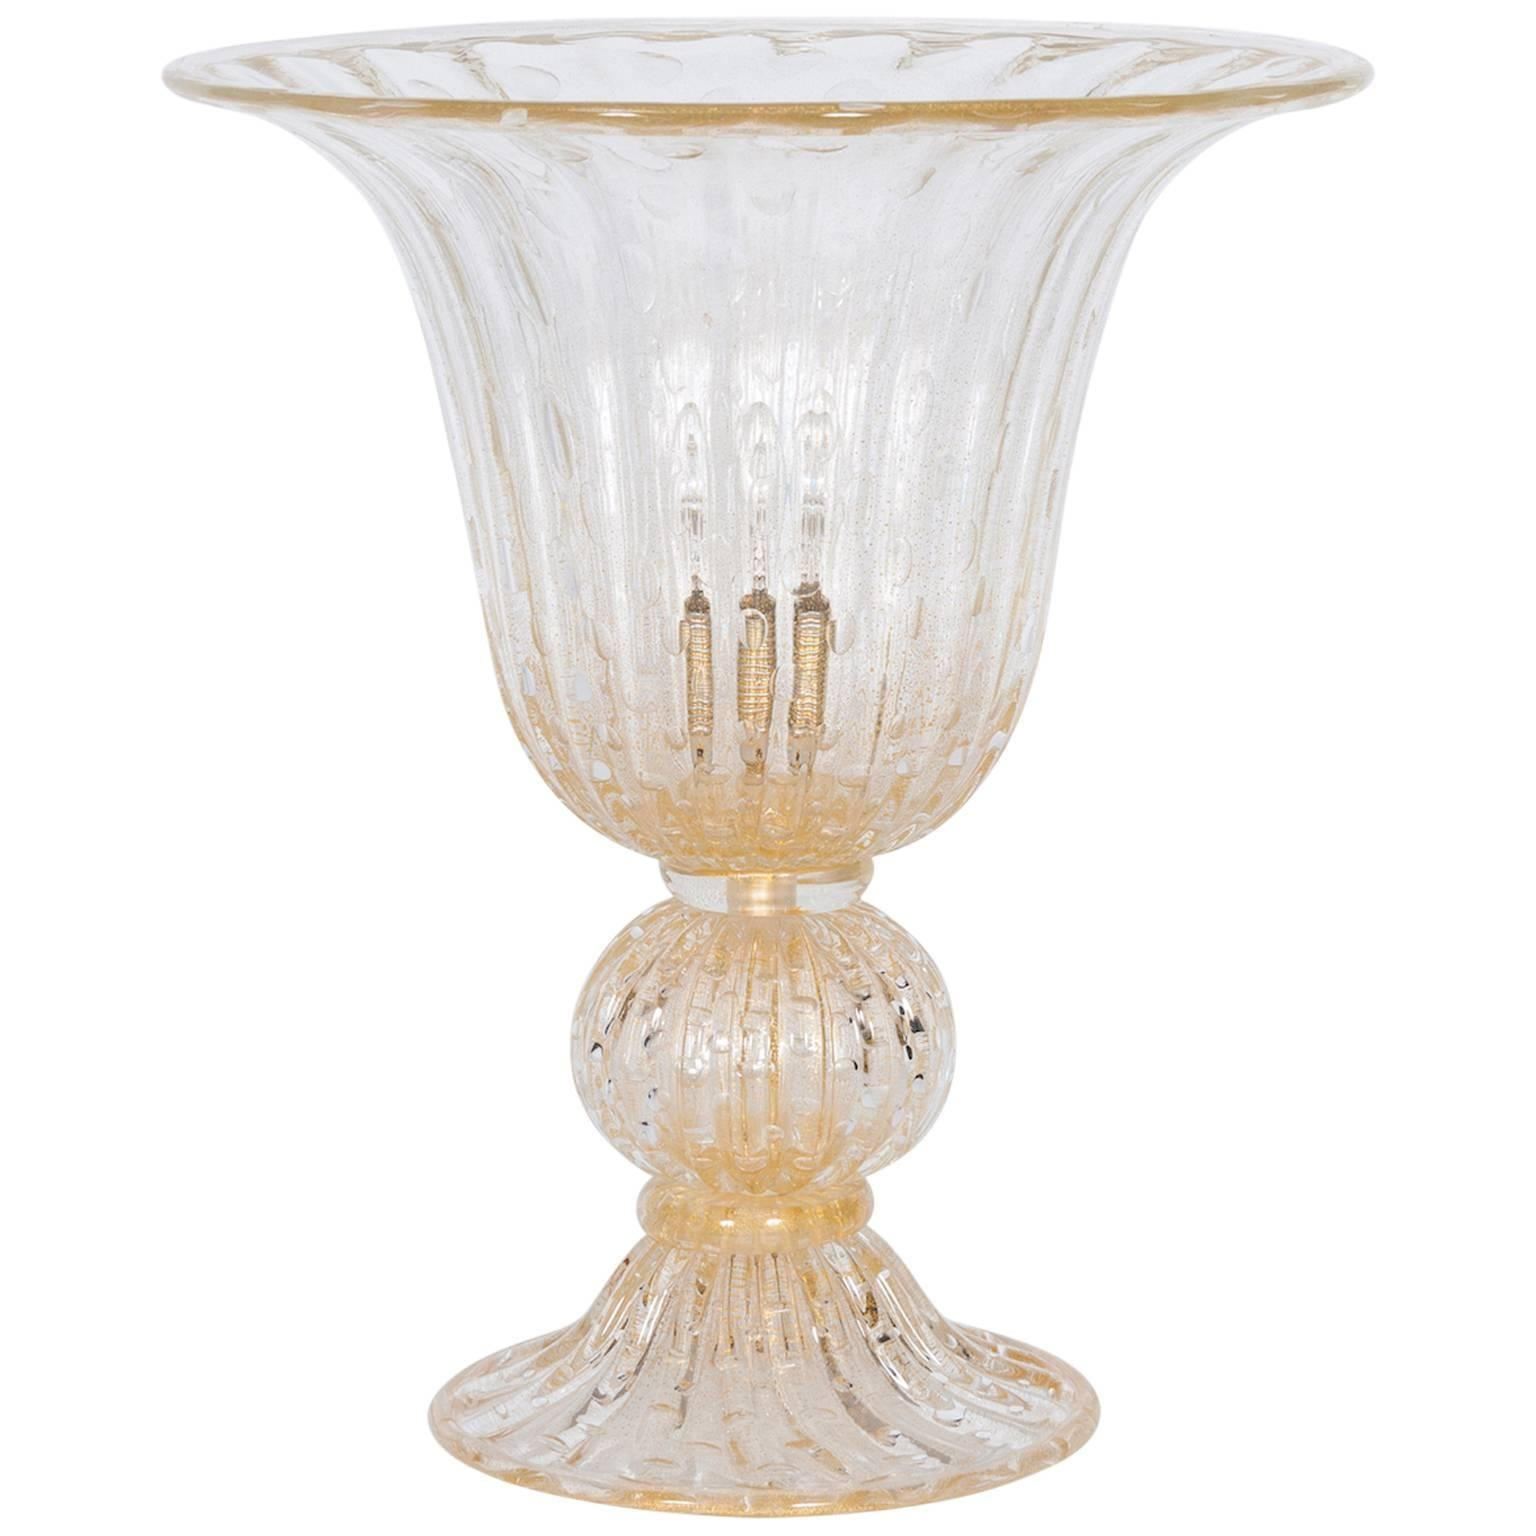 Italian Murano Glass Table Lamp, in the Style of Barovier & Toso, contemporary